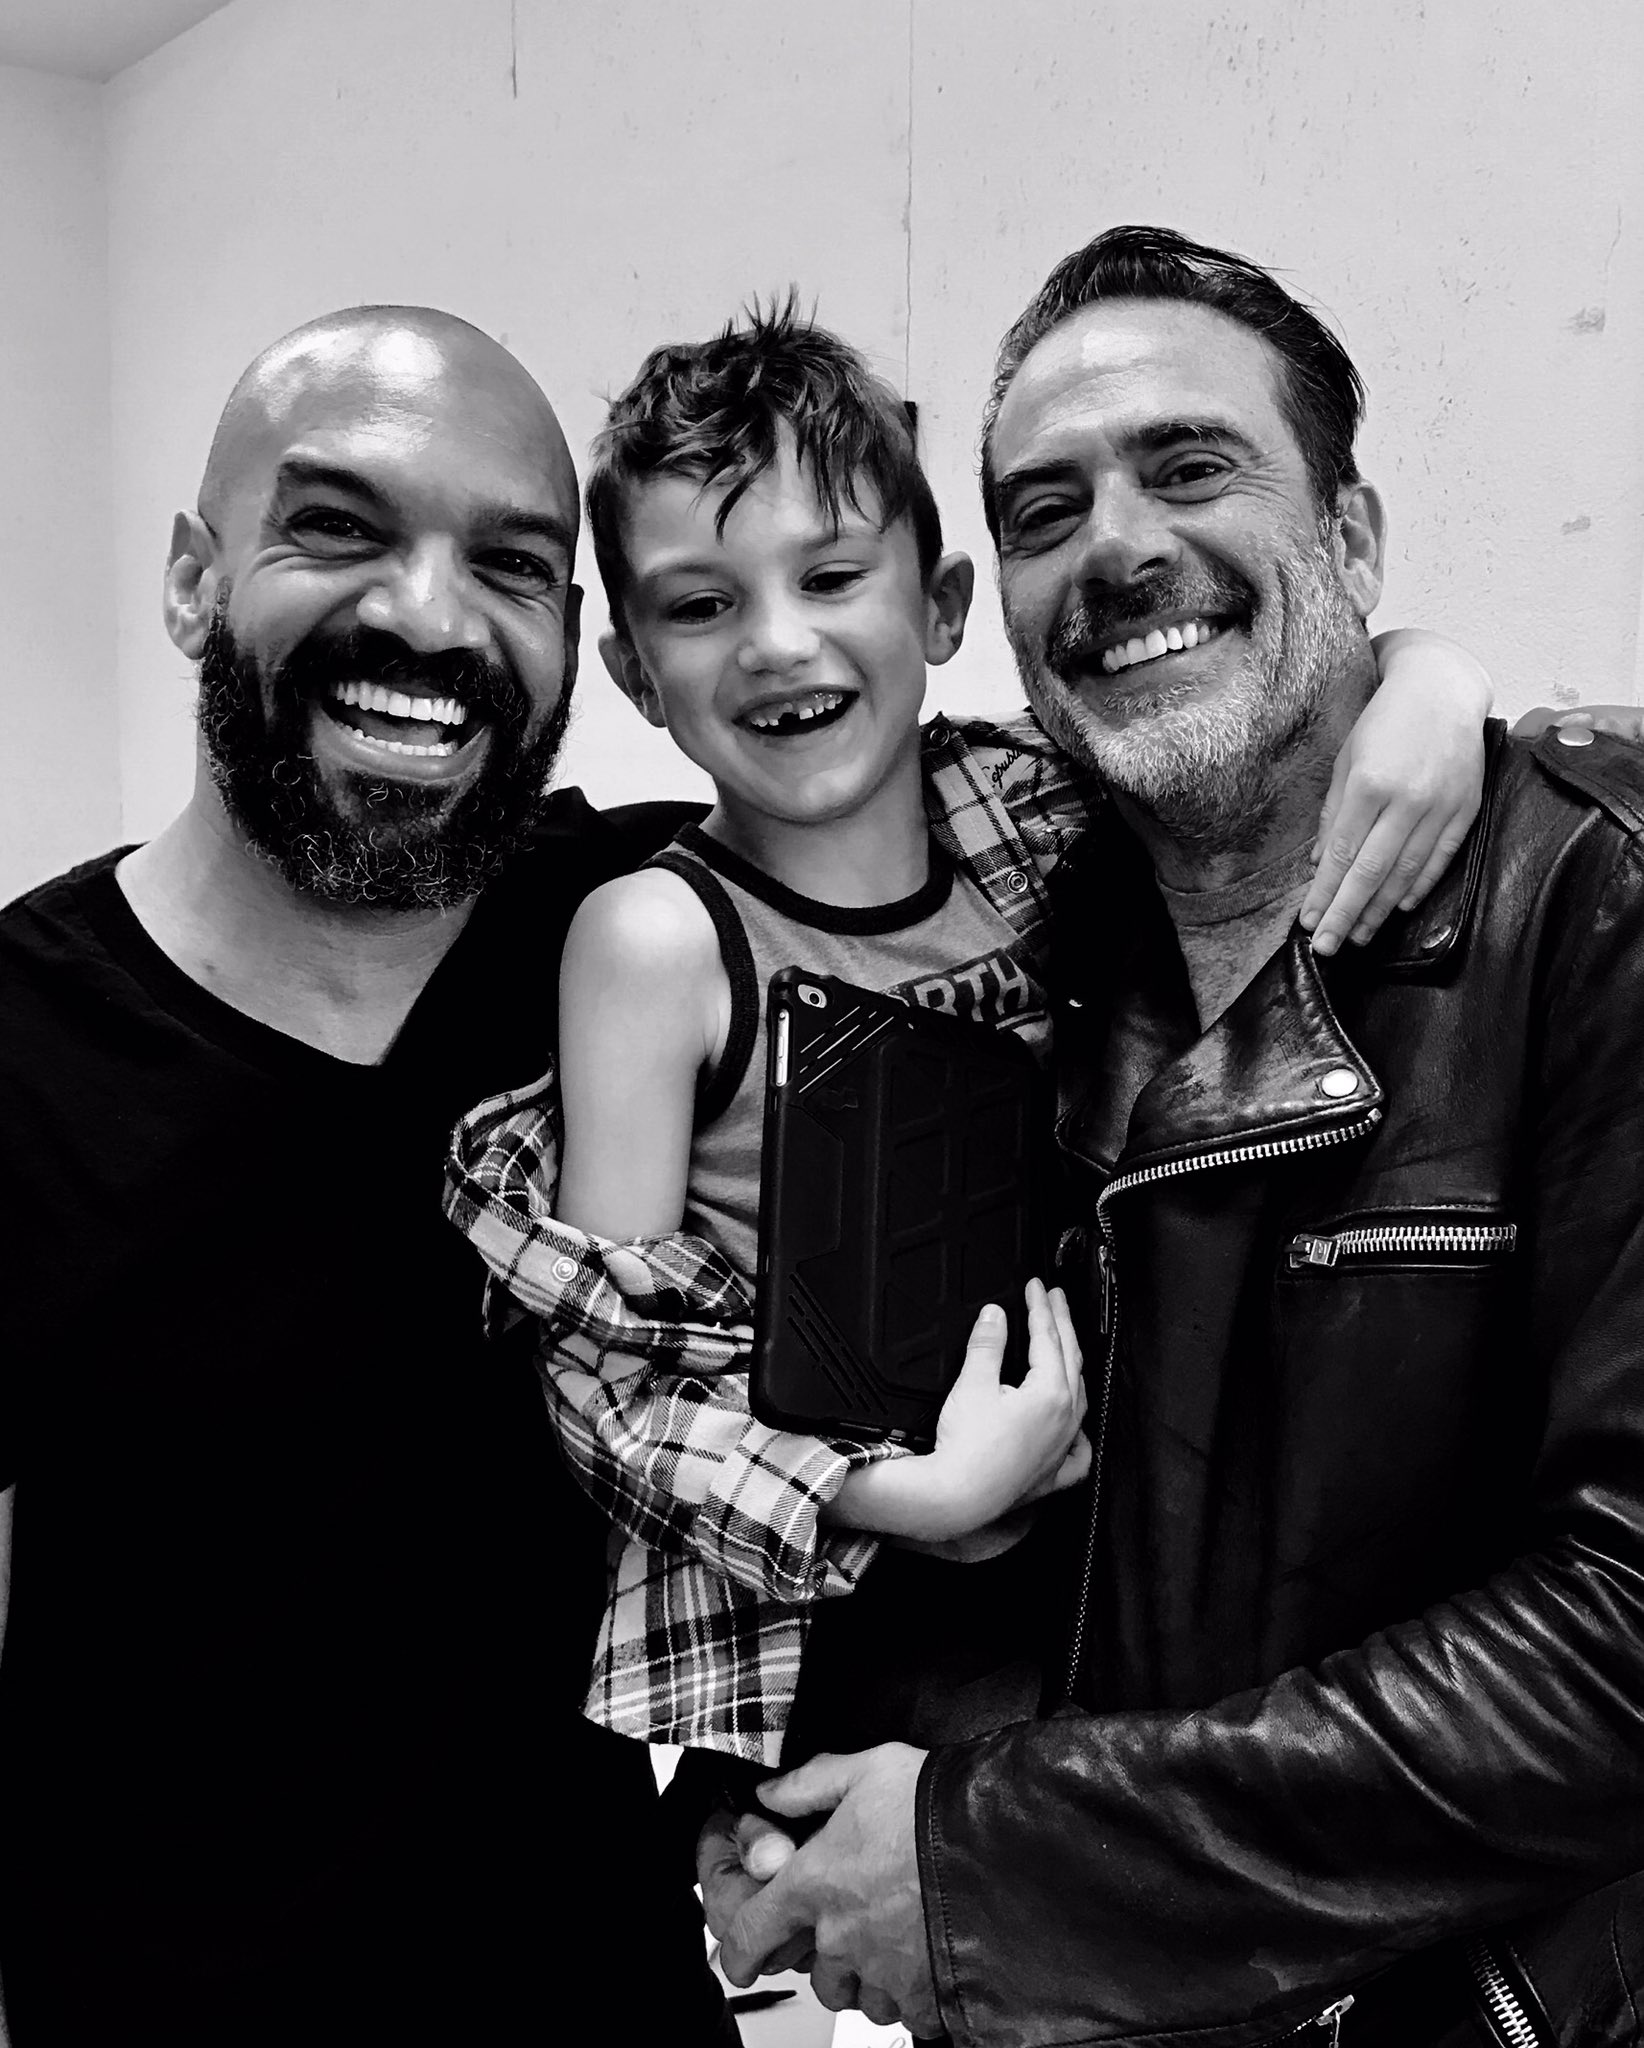 jeffrey dean morgan instagram